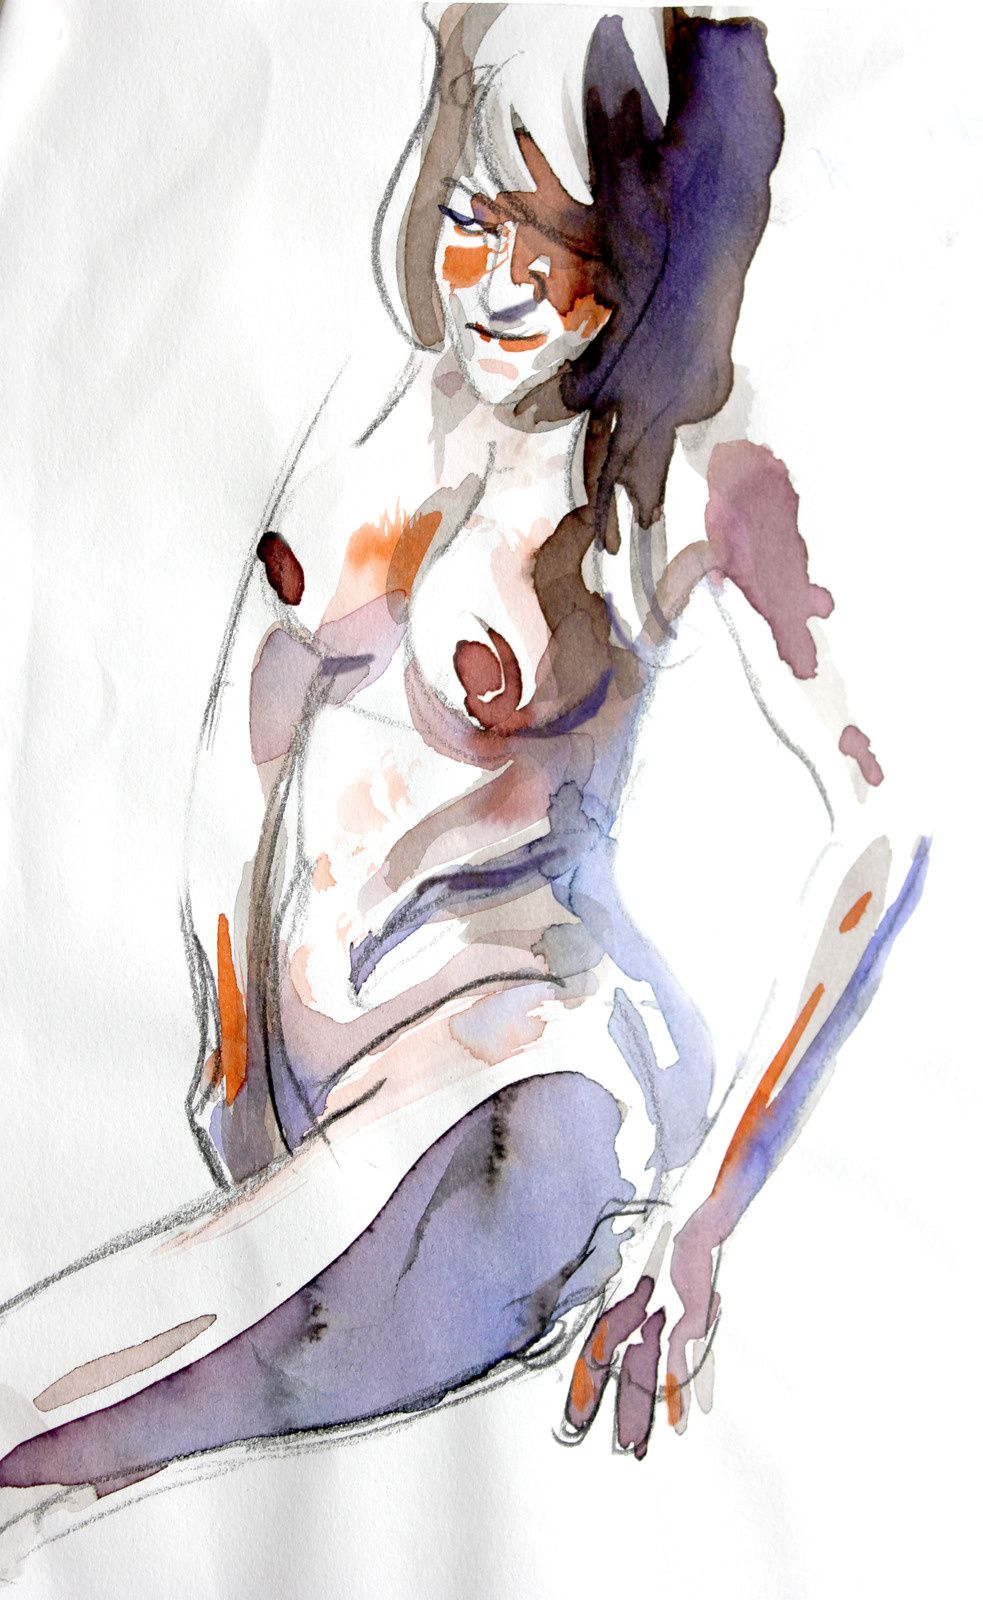 Modèle Vivant : pose de 8 minutes à l'encre aquarelle / Life-drawing : required time of 8 minutes, with brillant watercolour